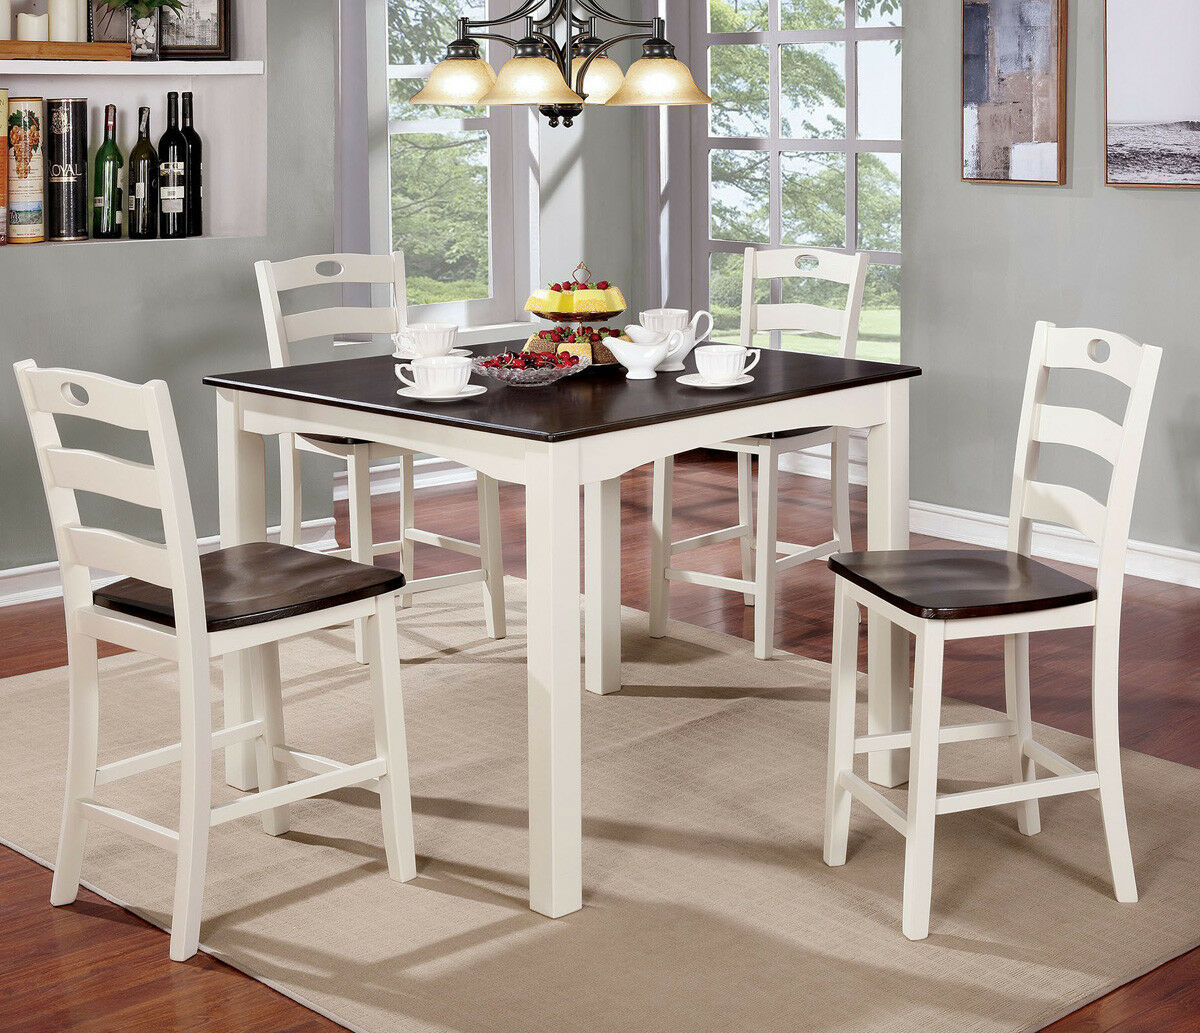 Casual 5 PC Two-Tone Counter Height Dining Table Set in Whit